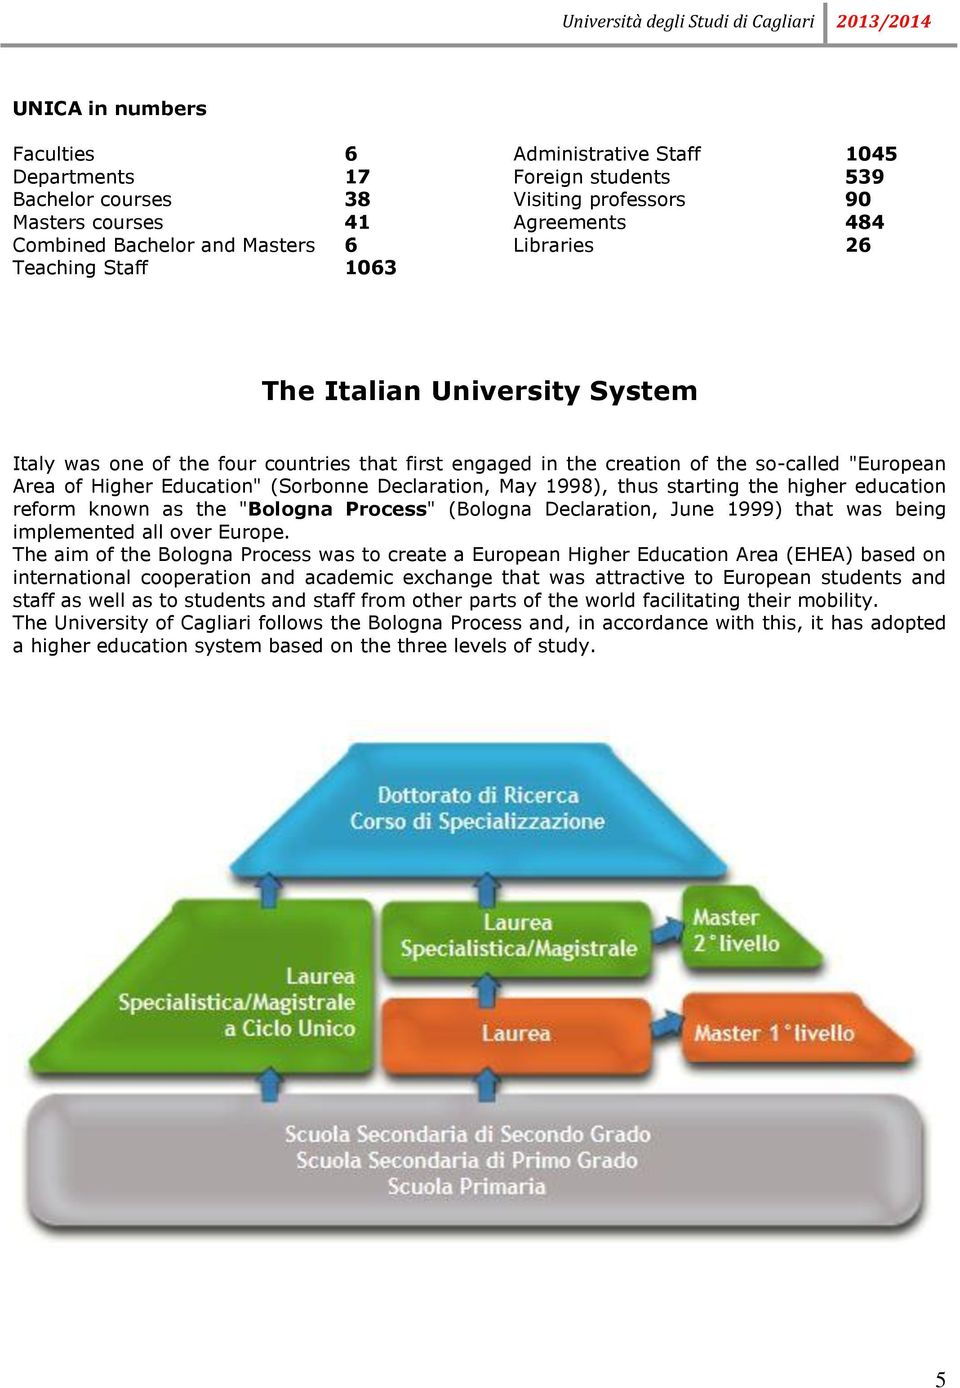 "(Sorbonne Declaration, May 1998), thus starting the higher education reform known as the ""Bologna Process"" (Bologna Declaration, June 1999) that was being implemented all over Europe."